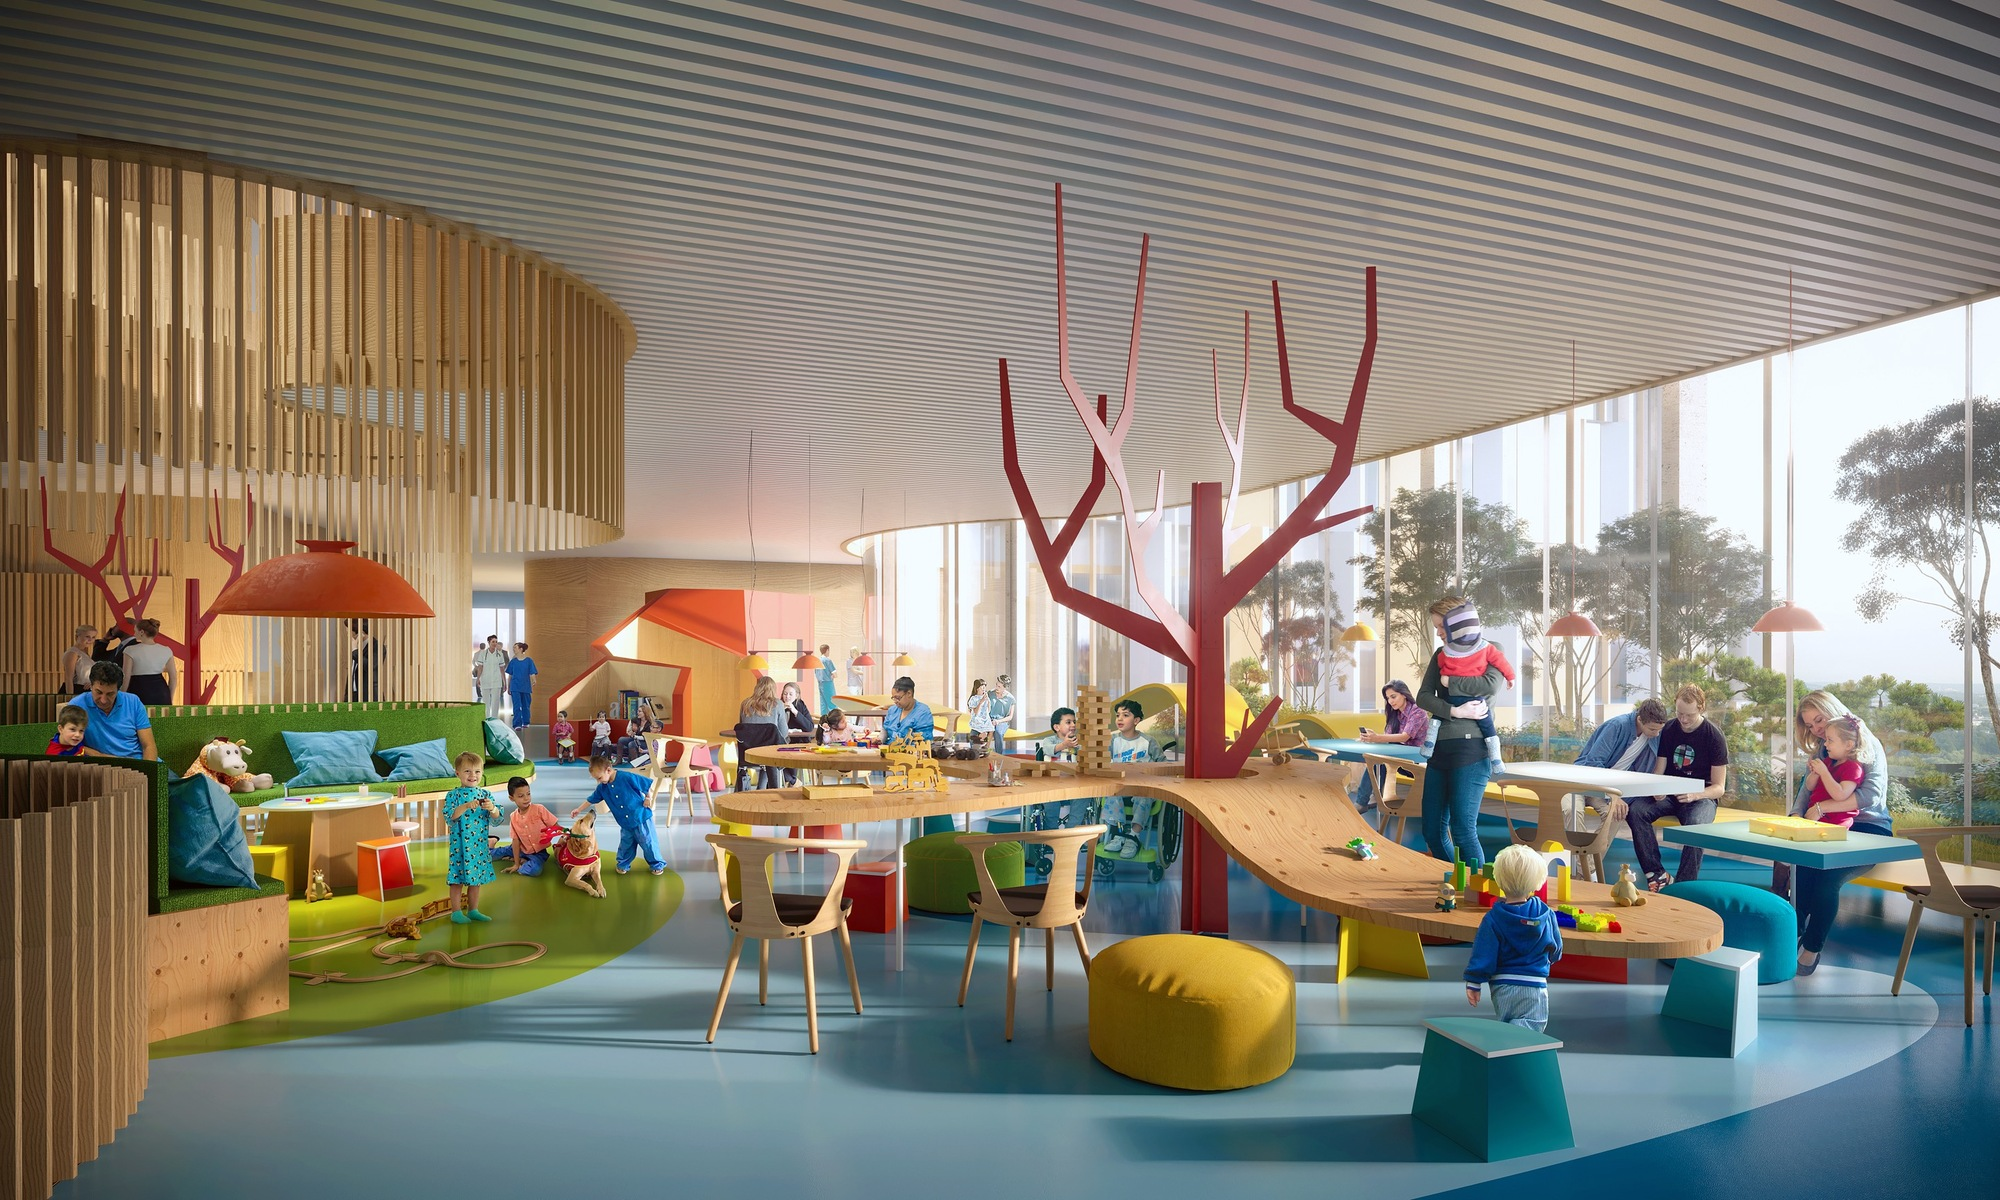 hospital children copenhagen 3xn play area competition architecture childrens interior architects playful wins designboom proposal logical playfully child project building